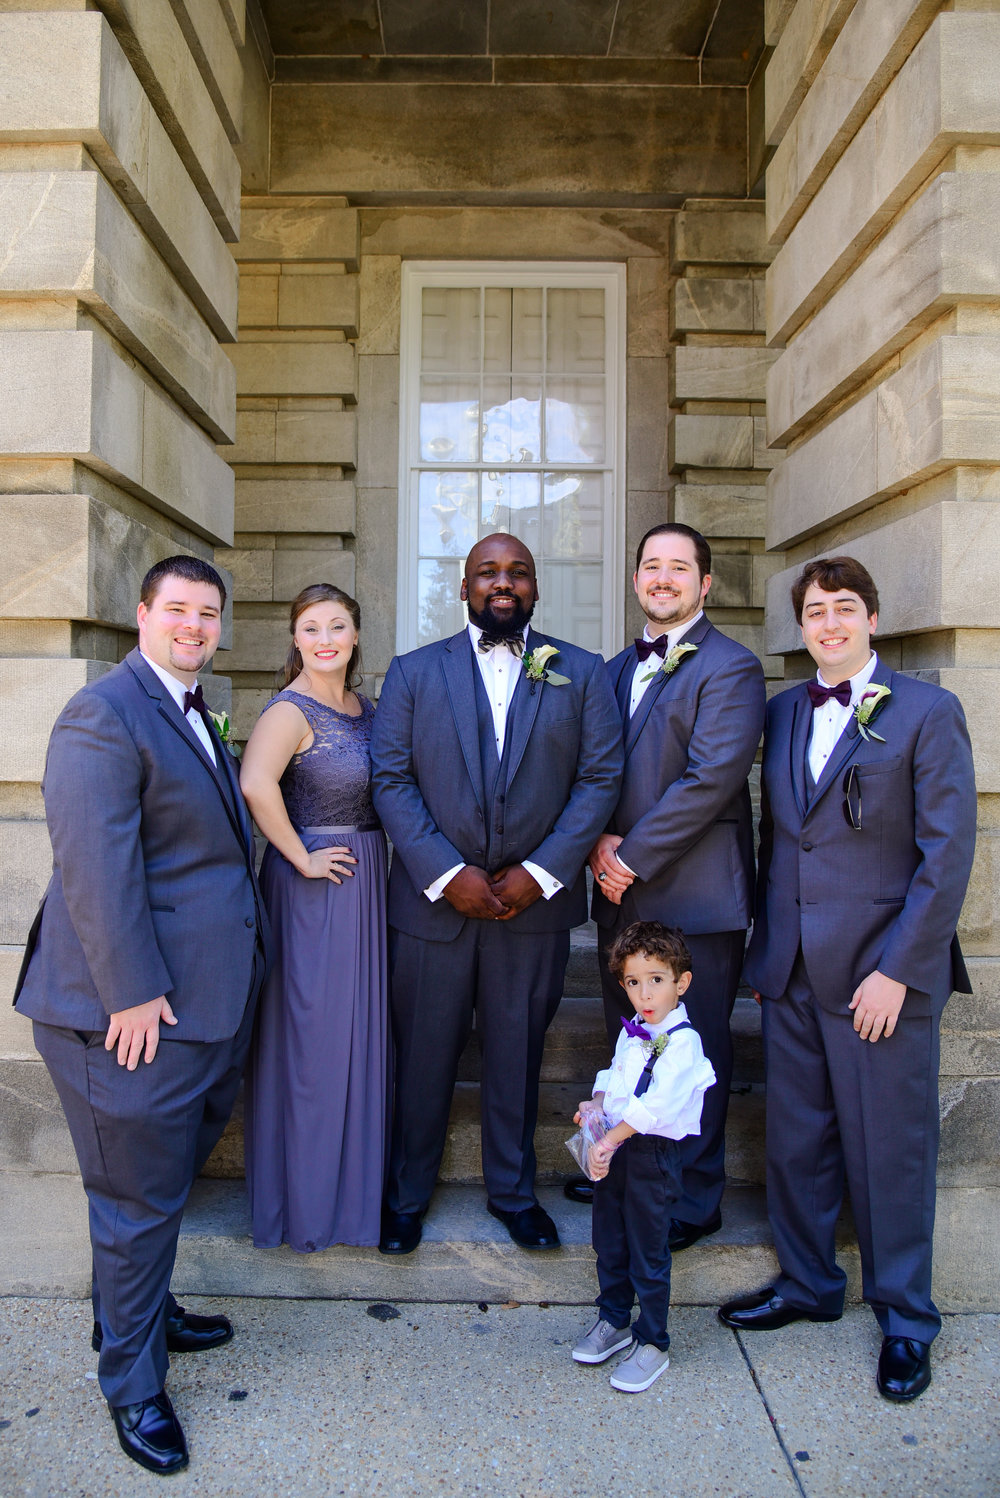 Groomsmen party in gray